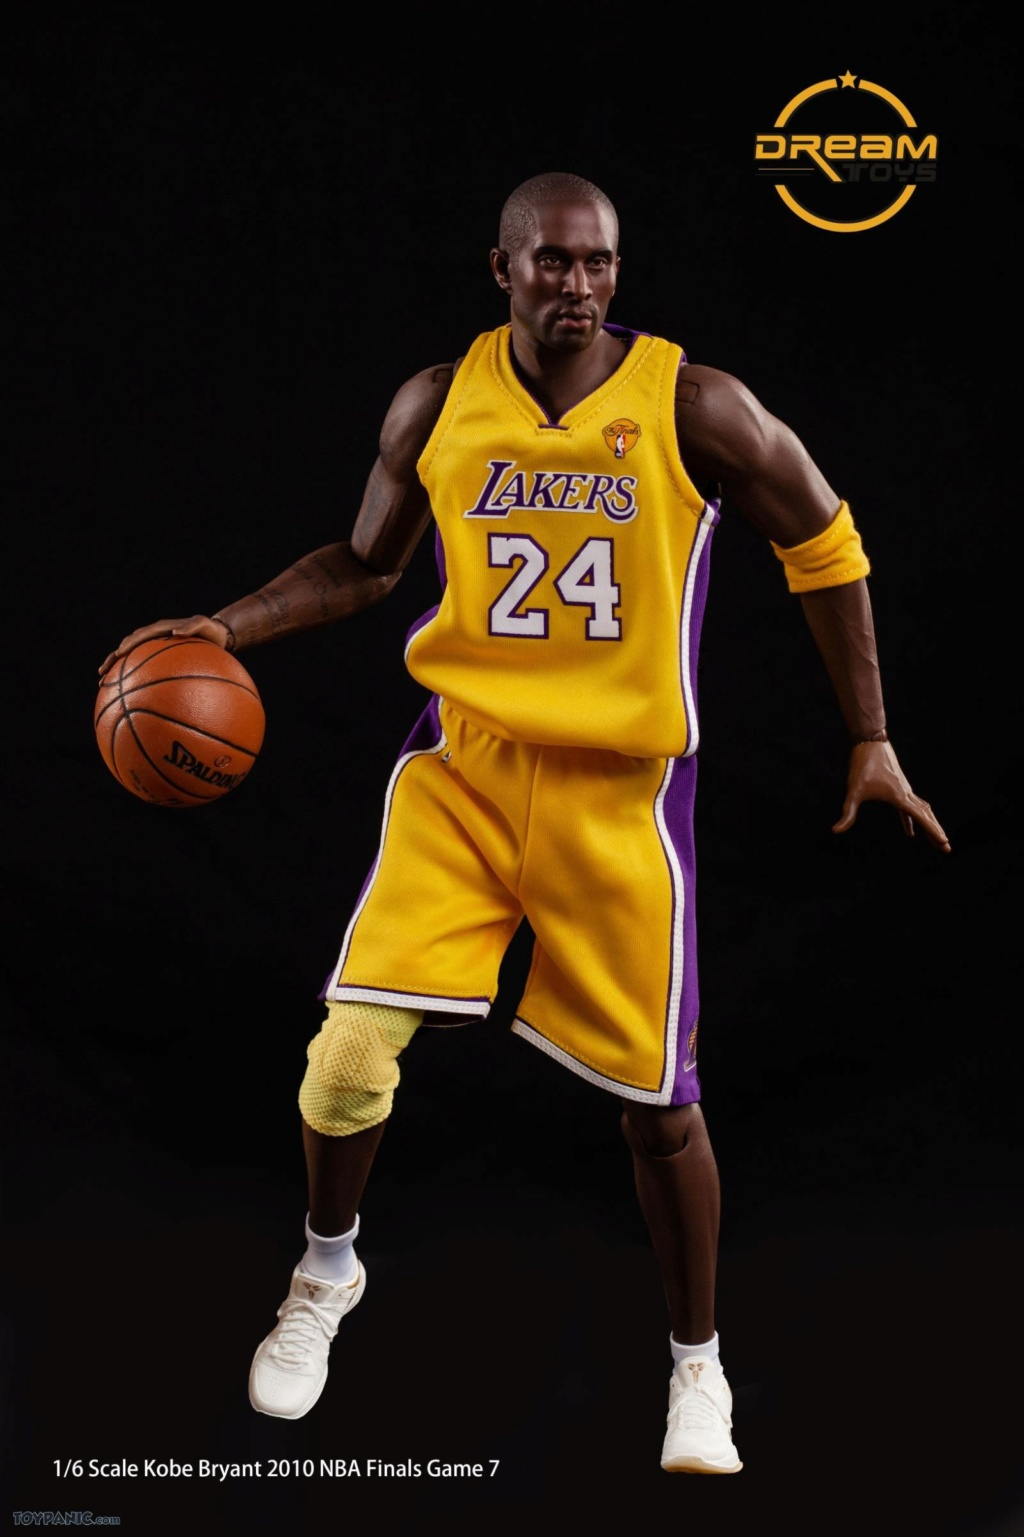 athlete - NEW PRODUCT: DreamToys: NBA Finals Jordan, Bryant, & James 1/6 scale action figures 030